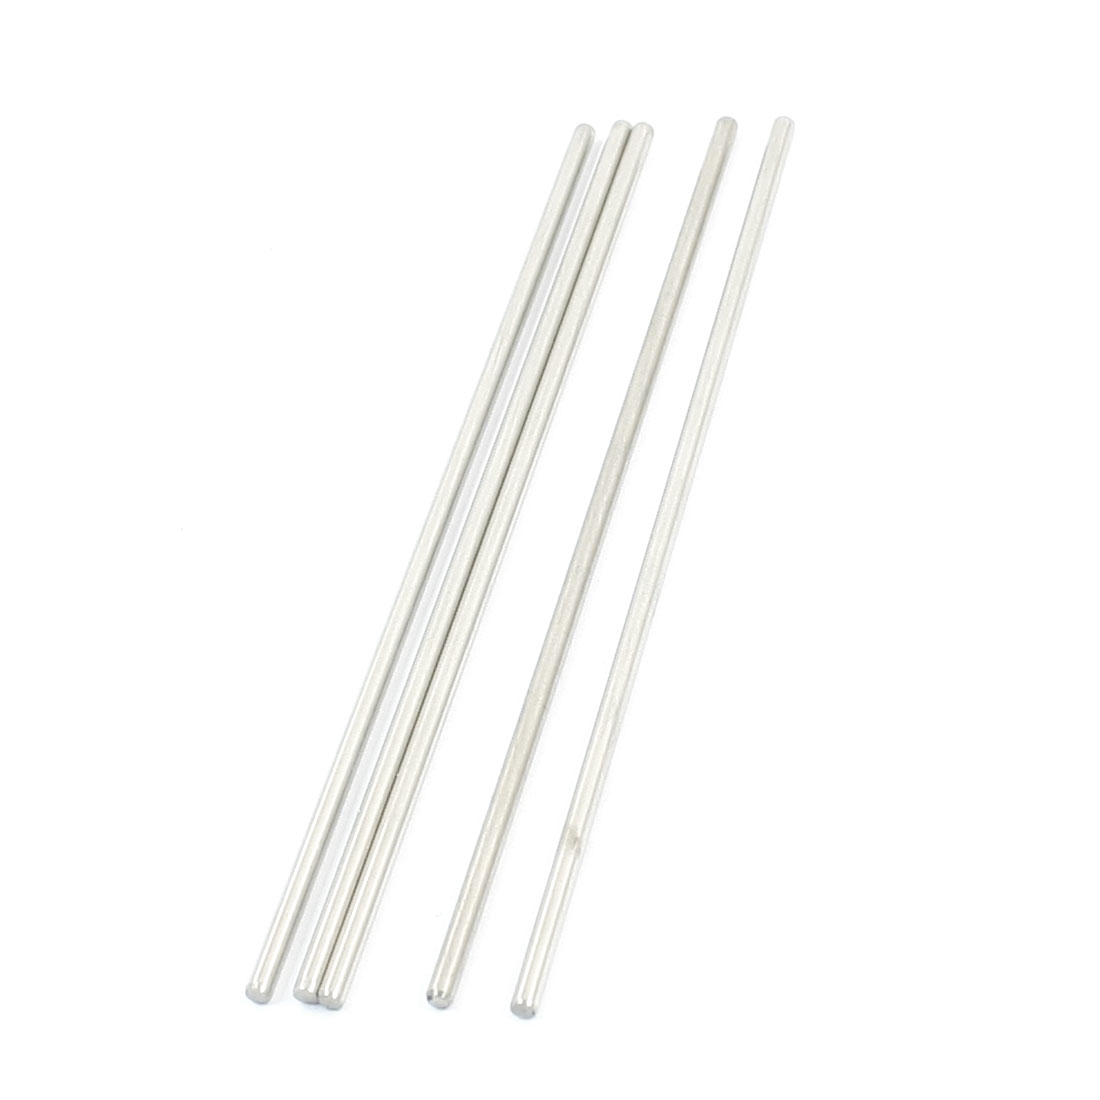 5PCS RC Helicopter Repairing Parts Round Rods 90mm x 2mm